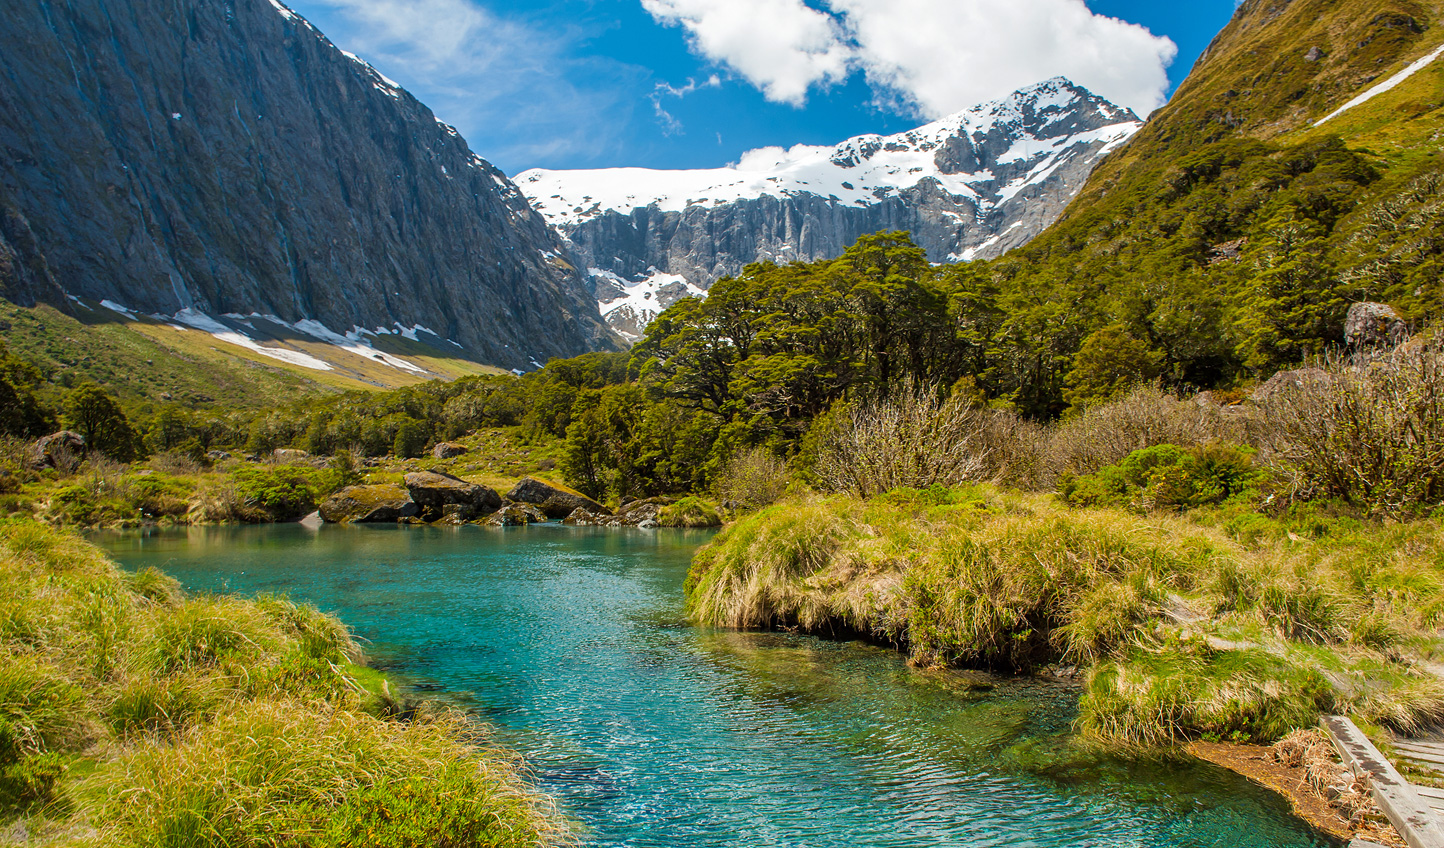 Lose yourself amid New Zealand's stunning landscapes on a journey through the South Island